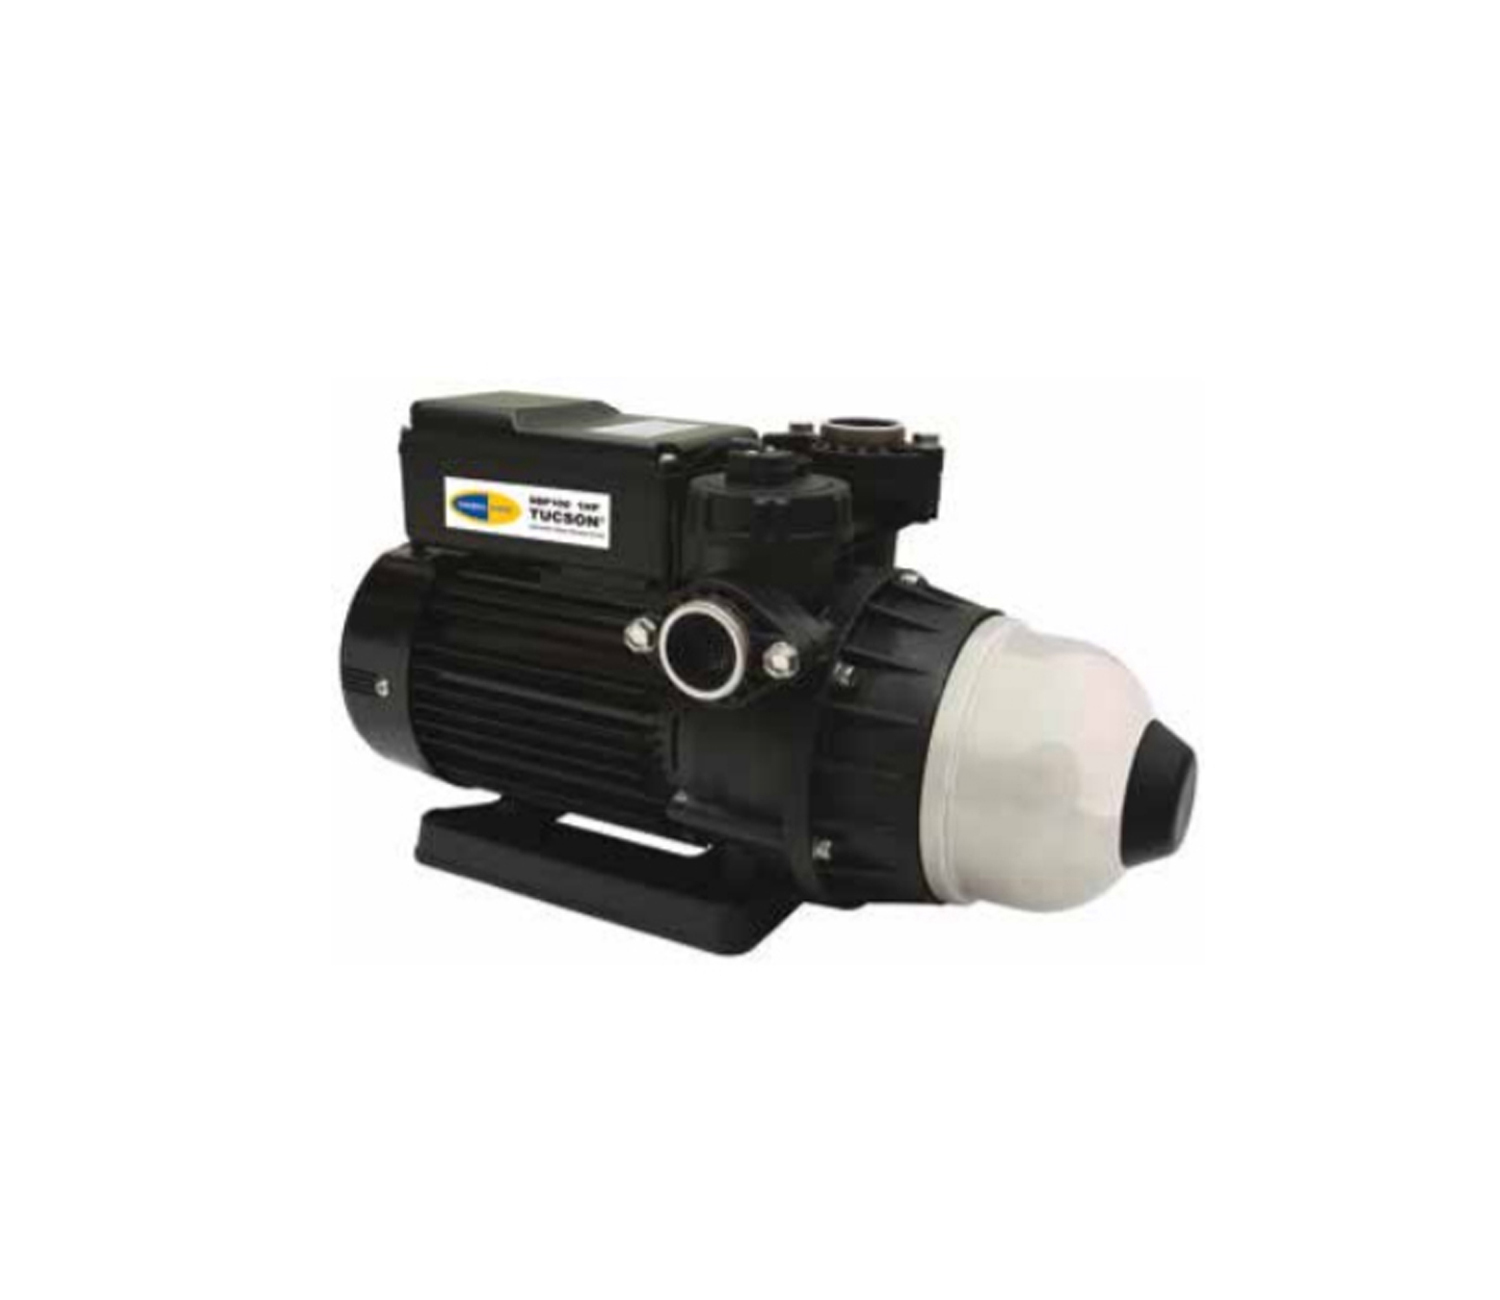 SBP-100 Silent Booster Pump 25 Metre 3.0 Bar